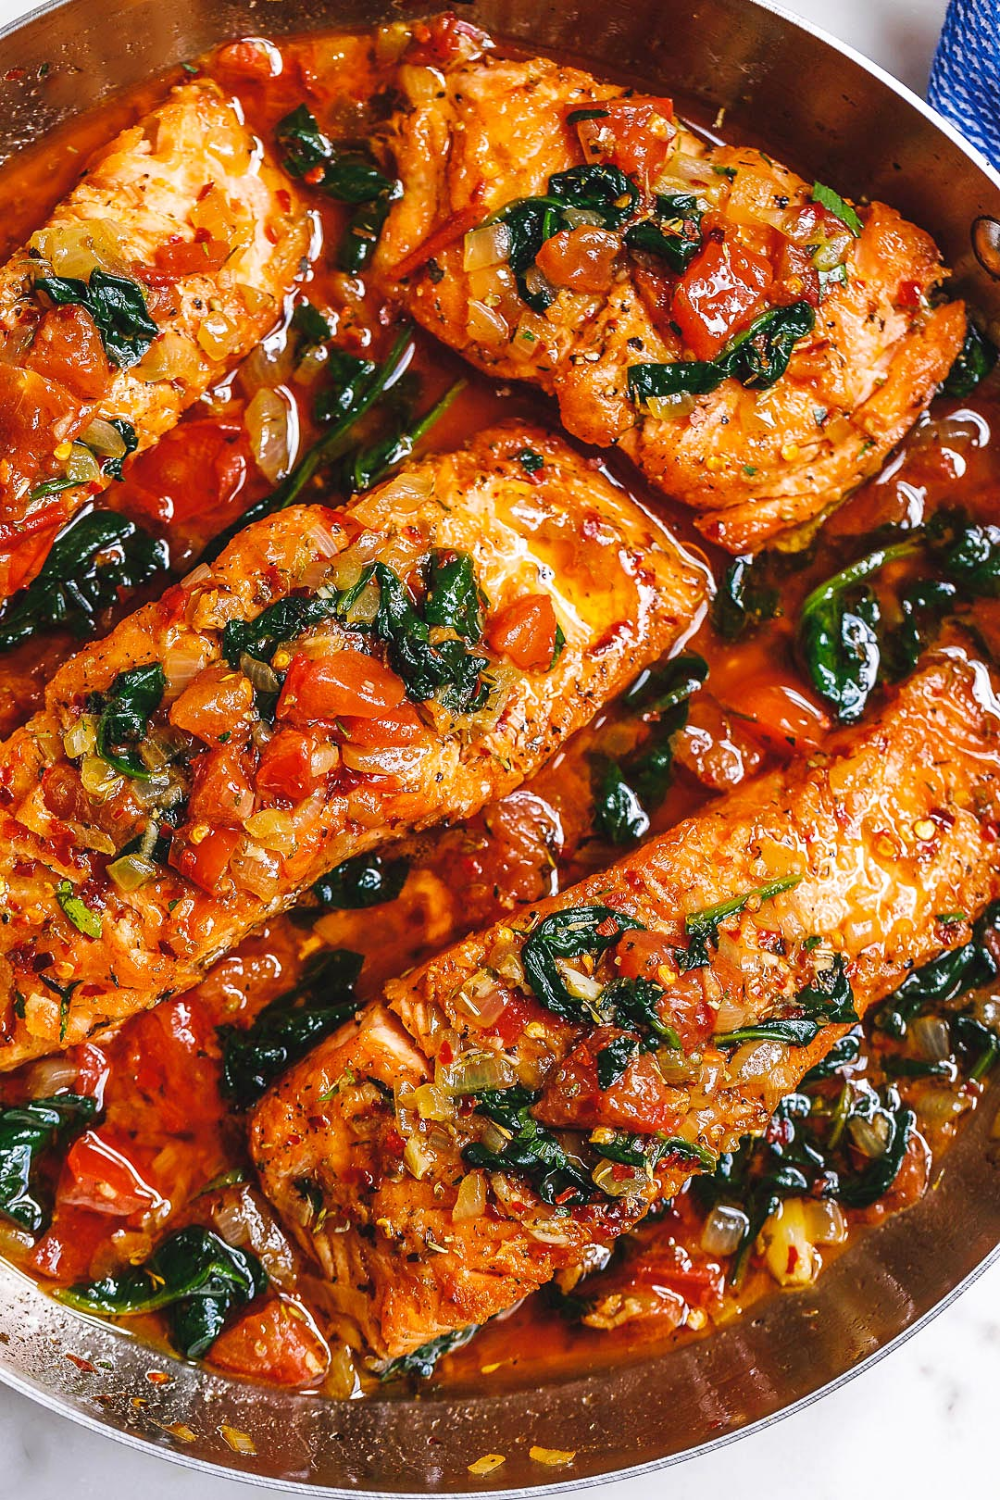 Tuscan Garlic Salmon Skillet with Spinach and Toma